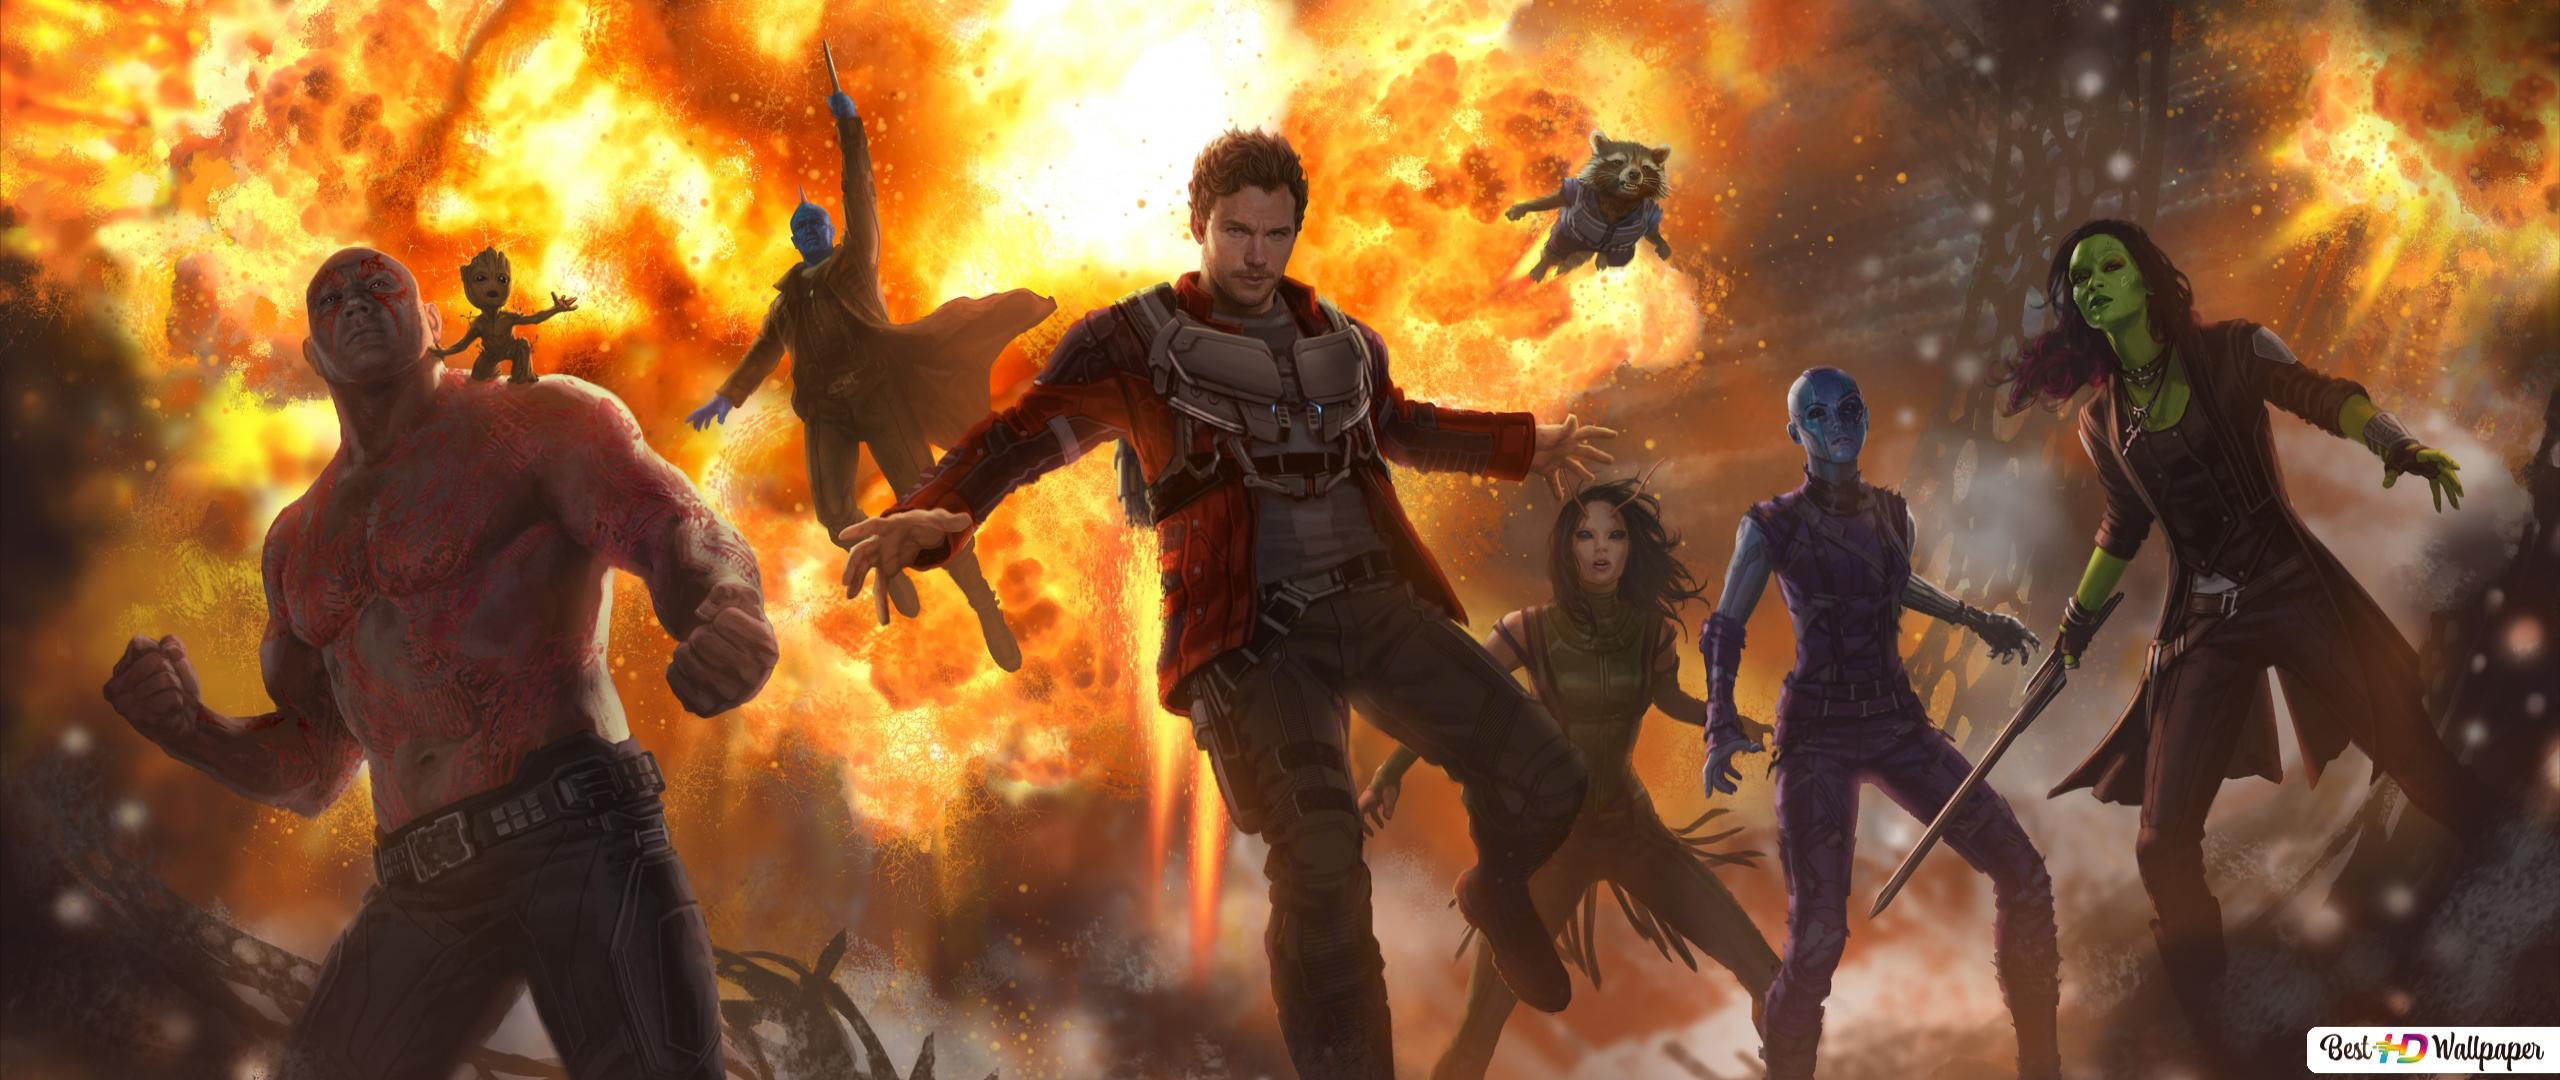 Guardians Of The Galaxy Vol 2 Heroes Hd Wallpaper Download